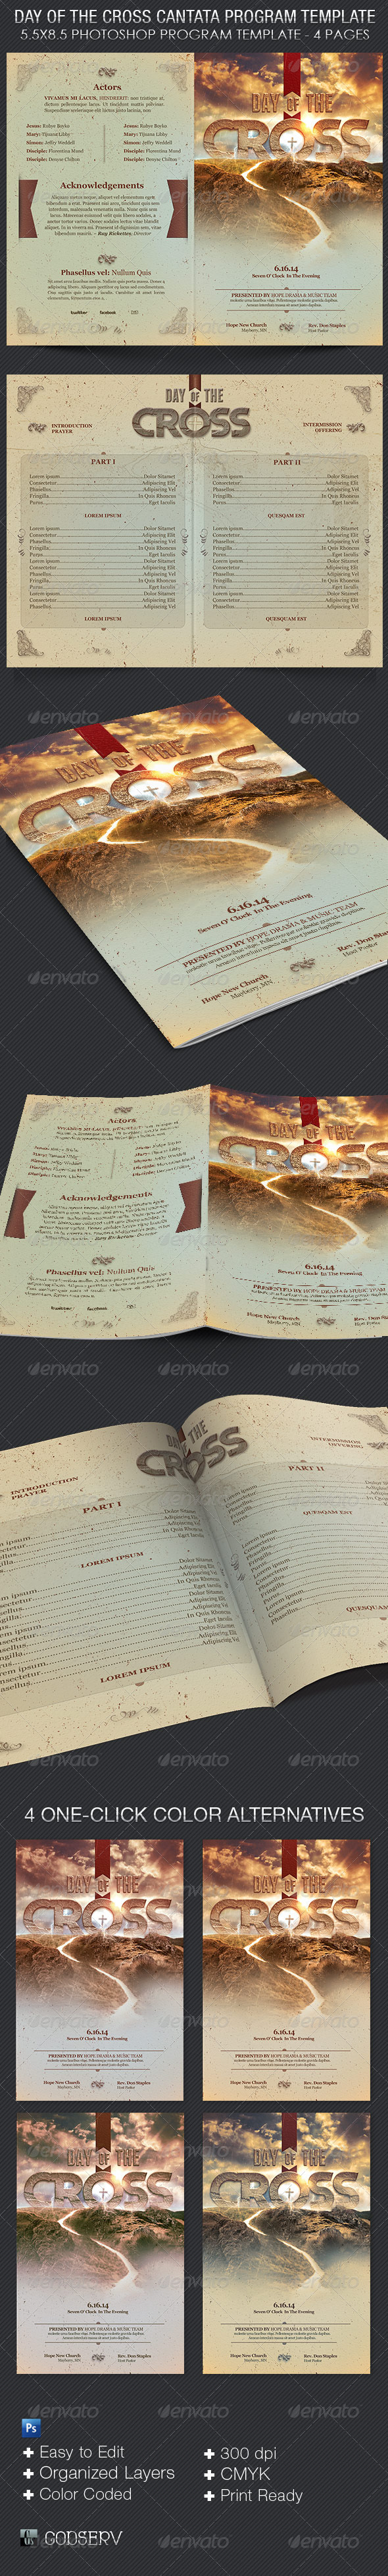 GraphicRiver Day of The Cross Church Program Template 6792664